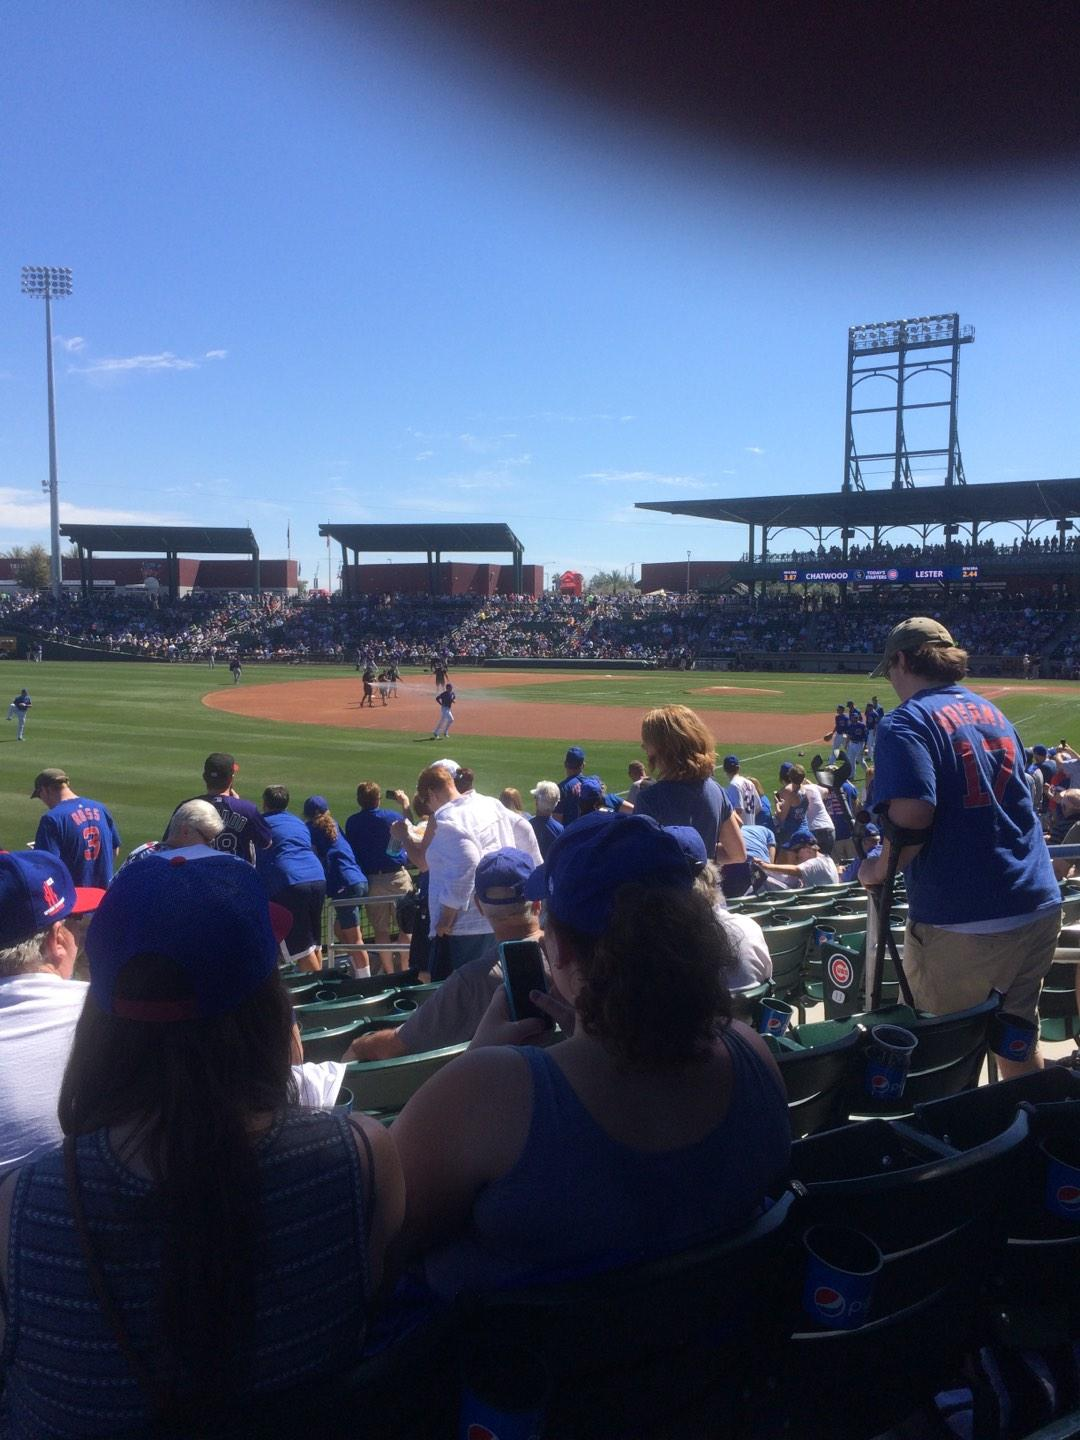 Sloan Park Section 102 Row 18 Seat 15